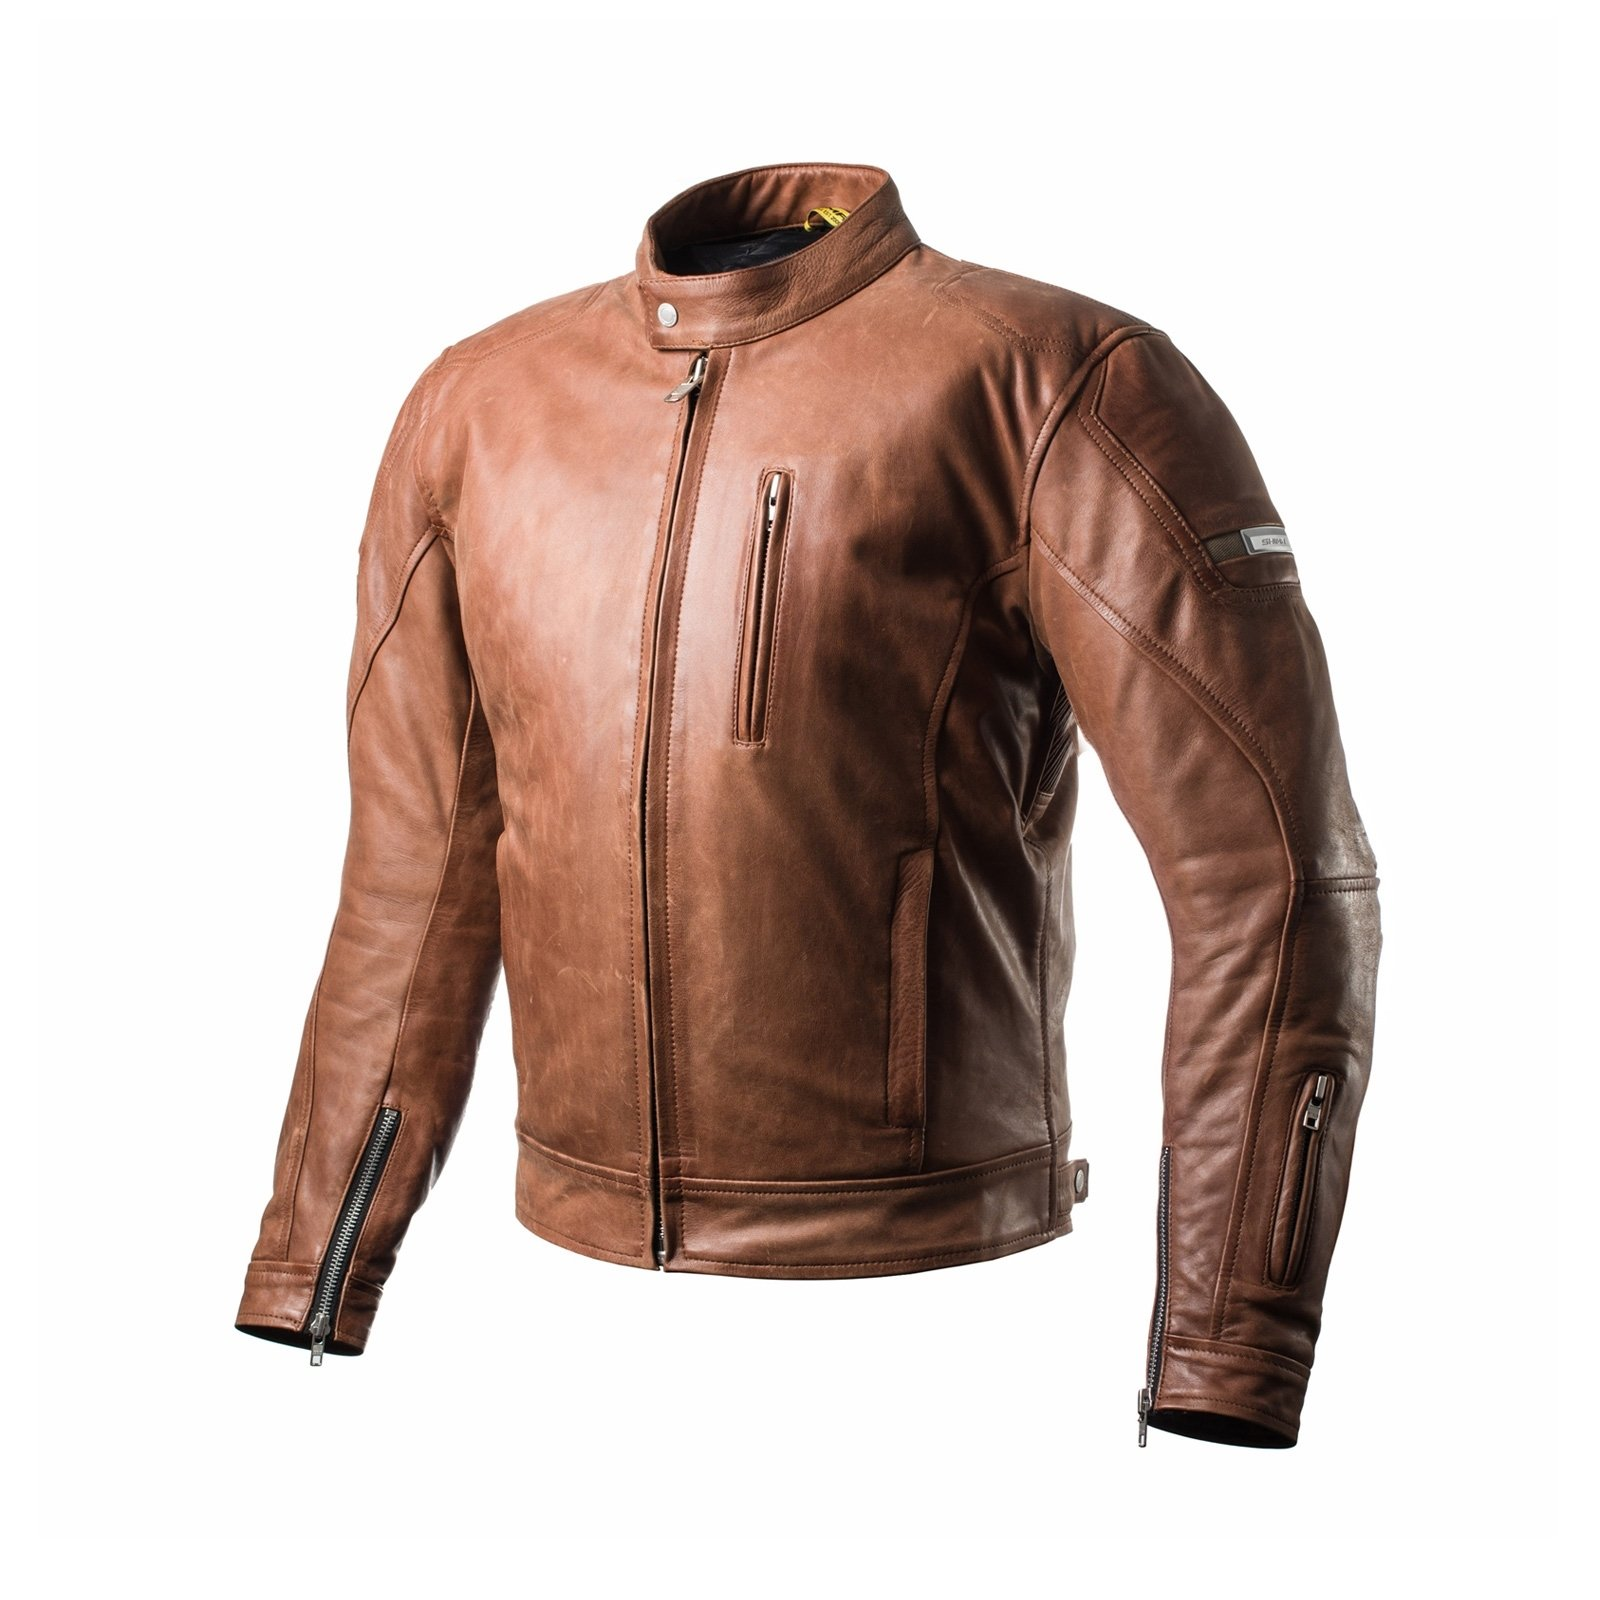 SHIMA HUNTER, Back Protector Summer Vintage Retro Mens Leather Motorcycle Jacket, Brown (S-XXL) (L, BROWN)